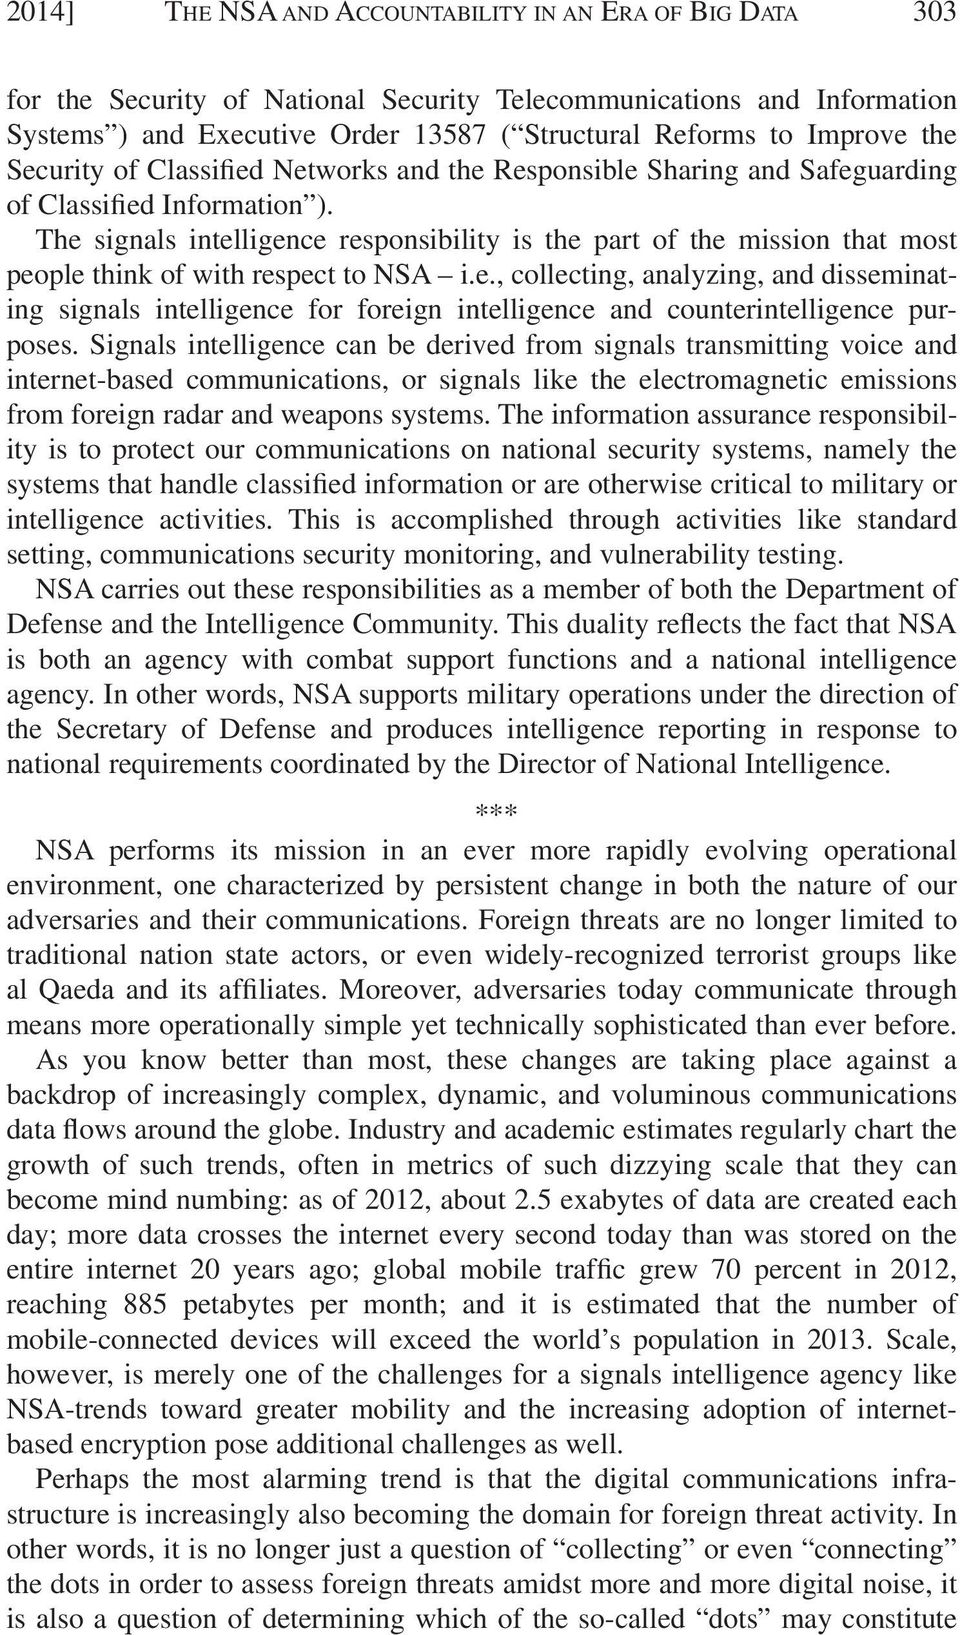 The signals intelligence responsibility is the part of the mission that most people think of with respect to NSA i.e., collecting, analyzing, and disseminating signals intelligence for foreign intelligence and counterintelligence purposes.